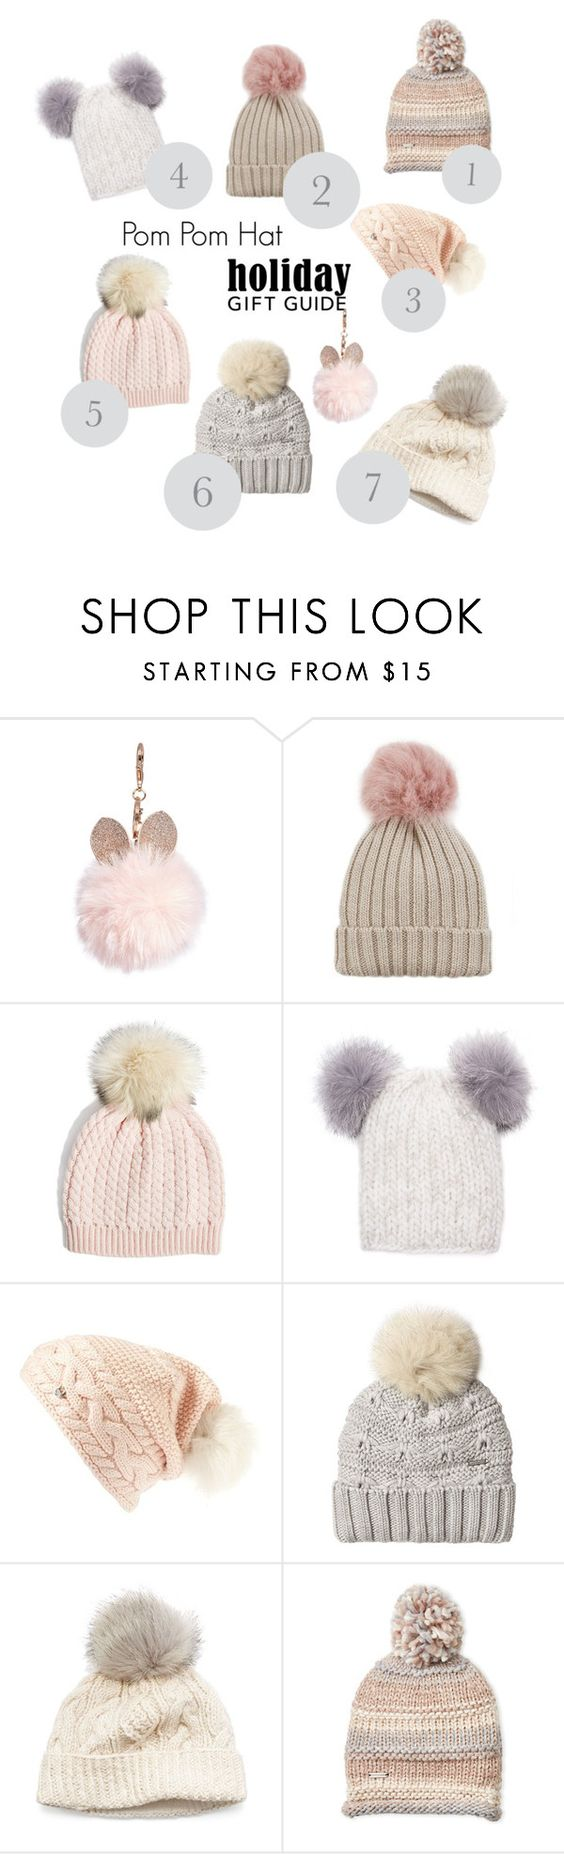 """""""Pom Pom Hat"""" by jurgat ❤ liked on Polyvore featuring GUESS, Jocelyn, Eugenia Kim, UGG, Woolrich, SIJJL and Steve Madden"""